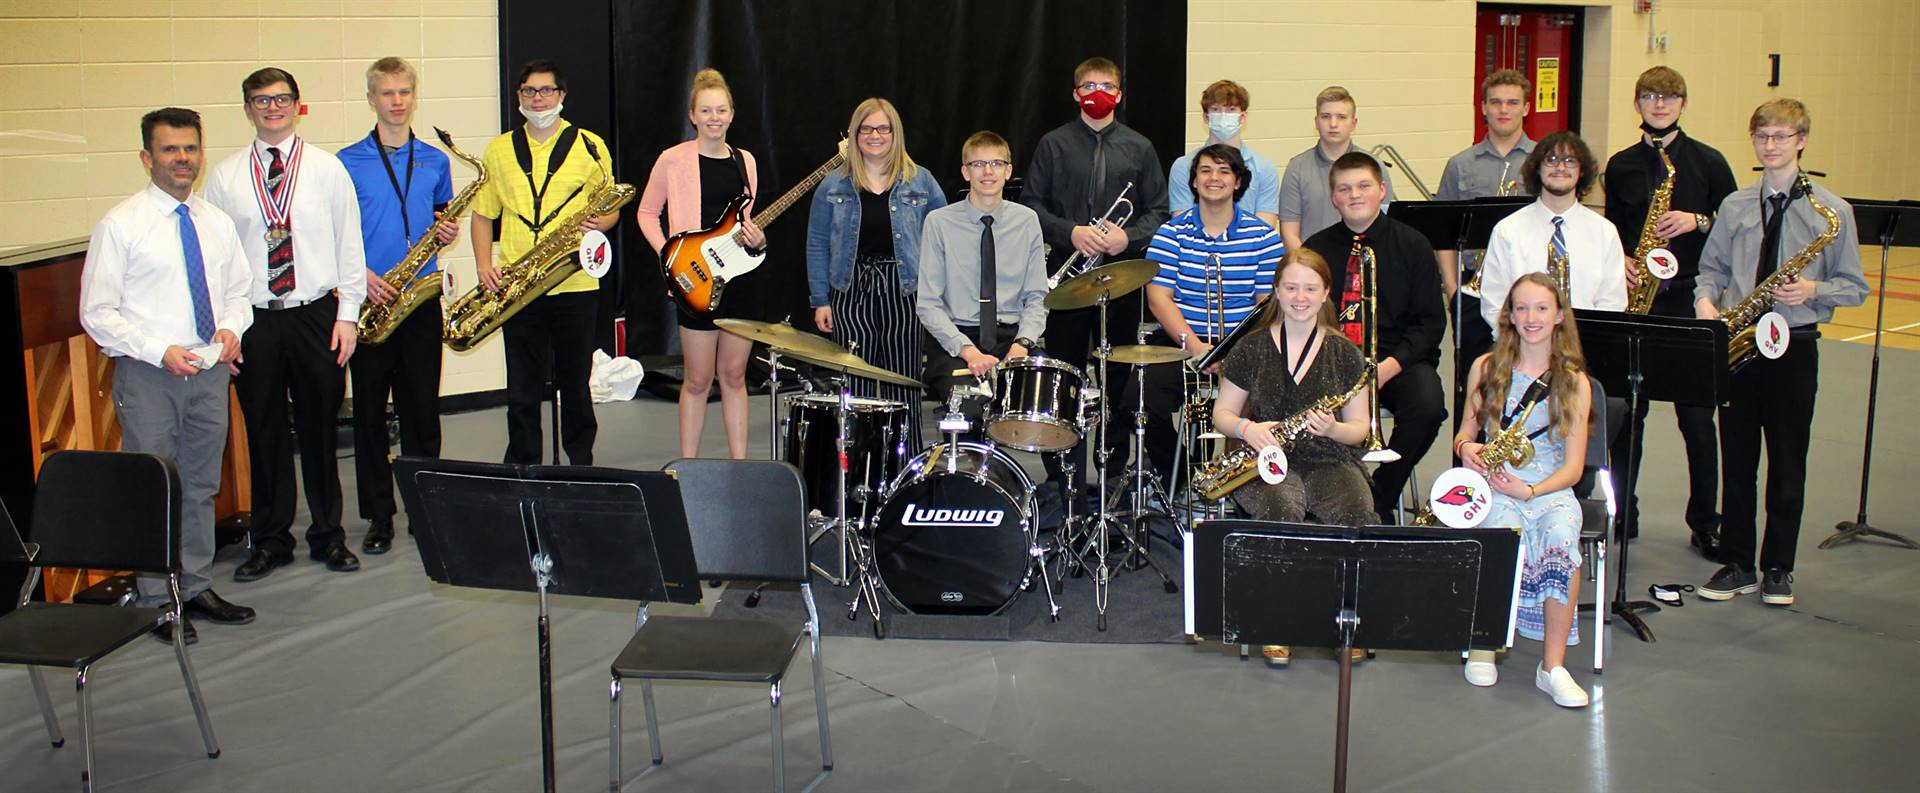 Jazz band students posing for a photo with their musical instruments